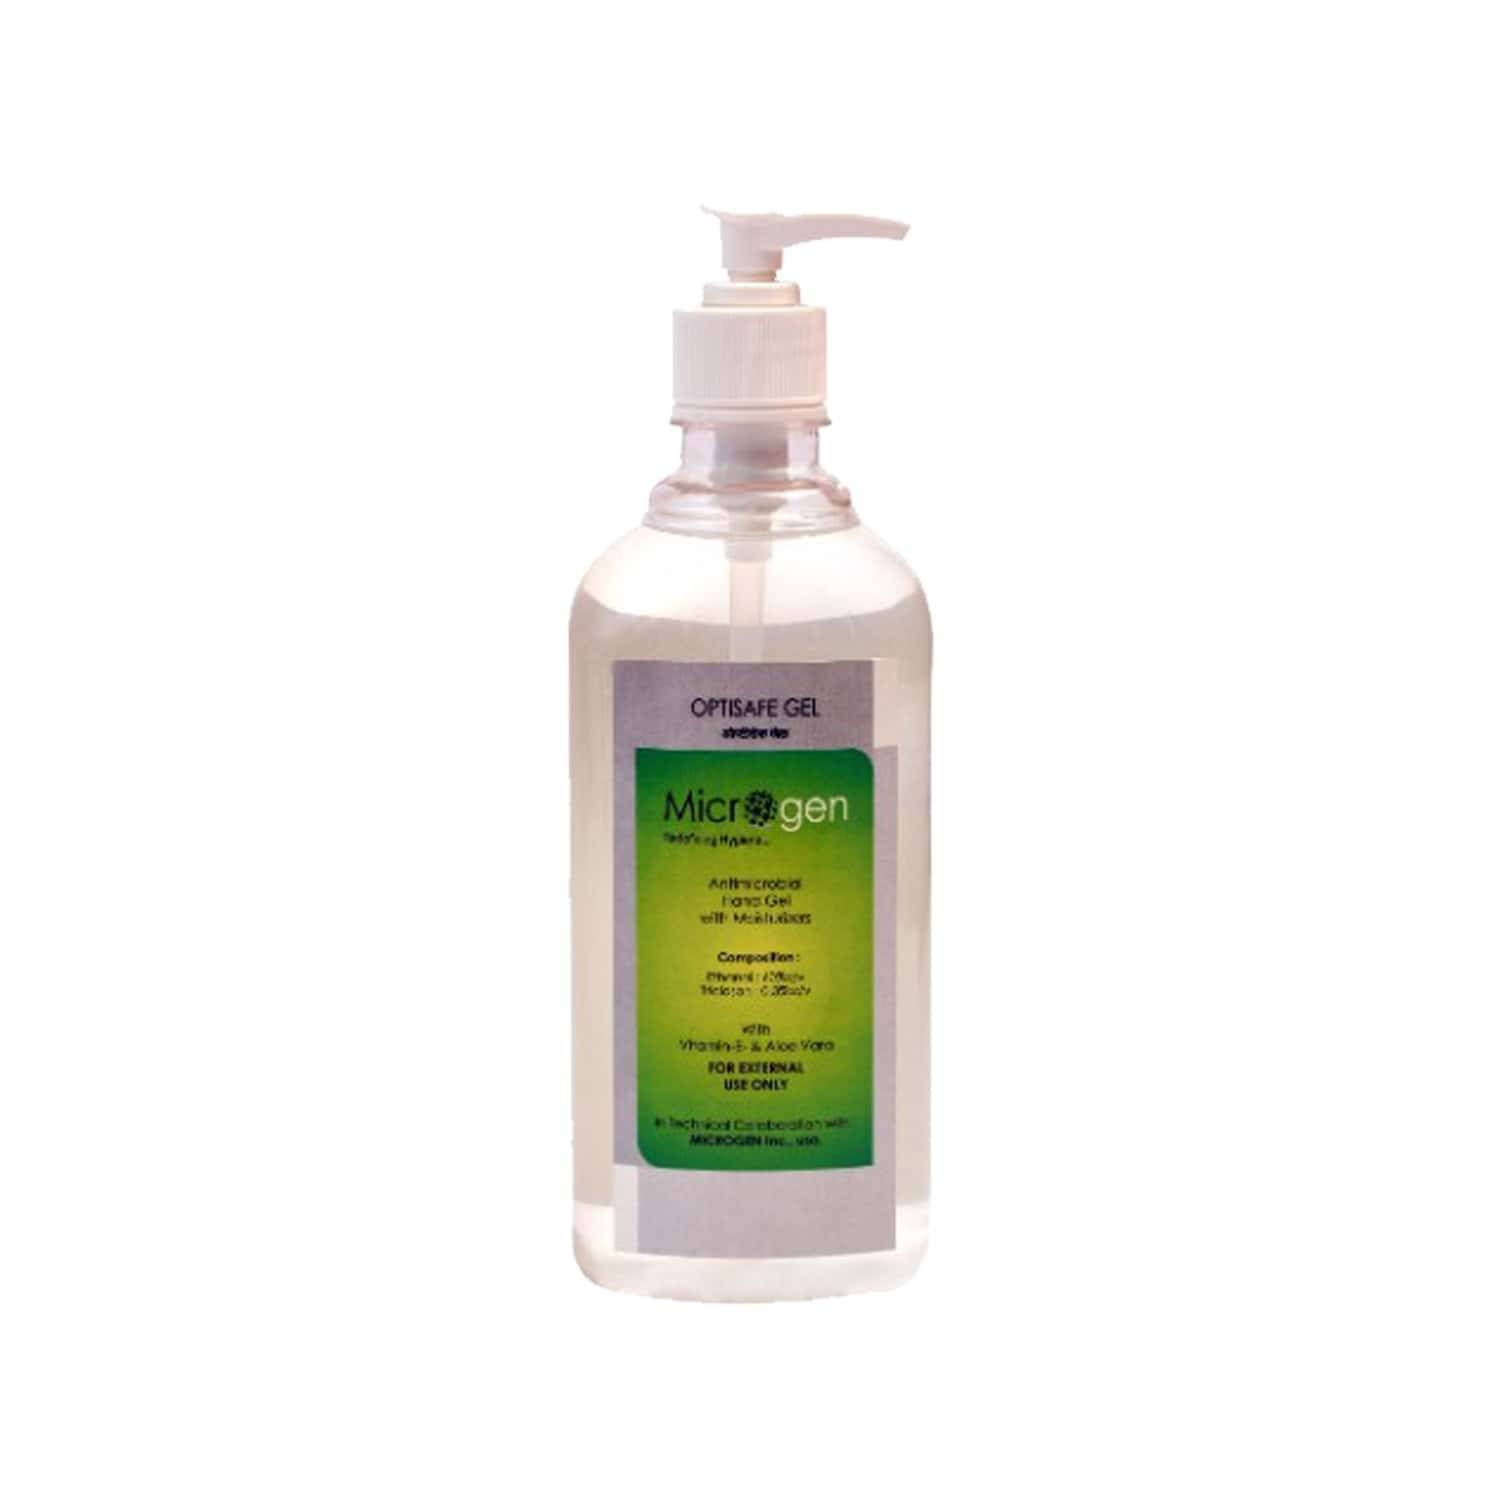 Microgen Optisafe Gel 500 Ml